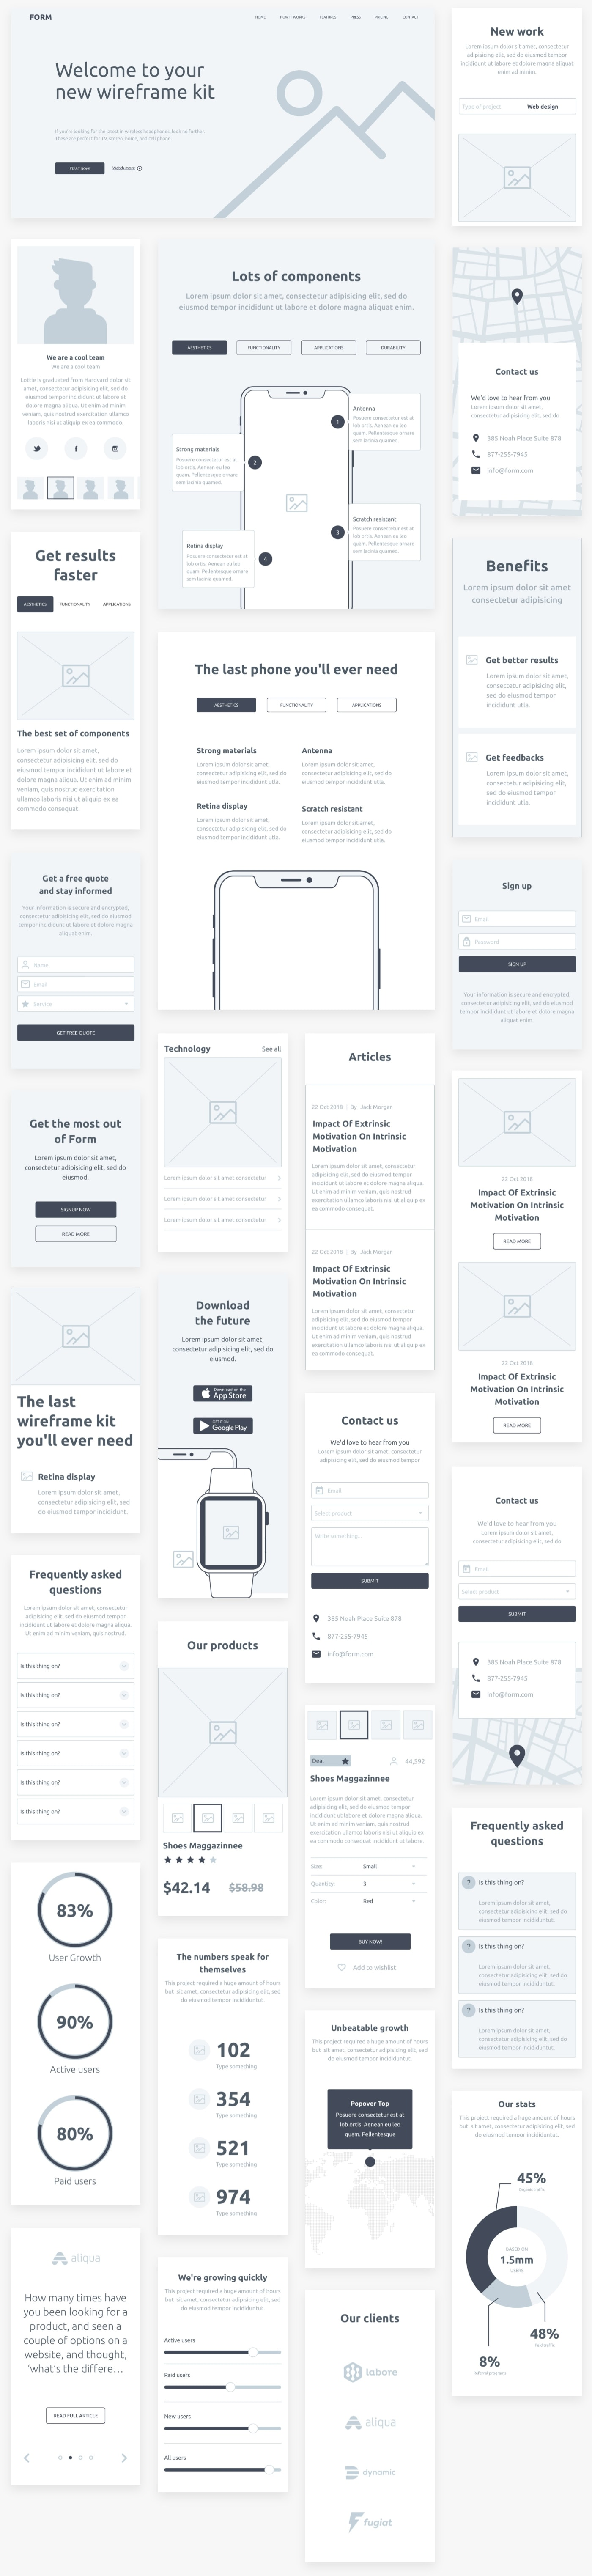 Form - Wireframe kit from InVision from UIGarage